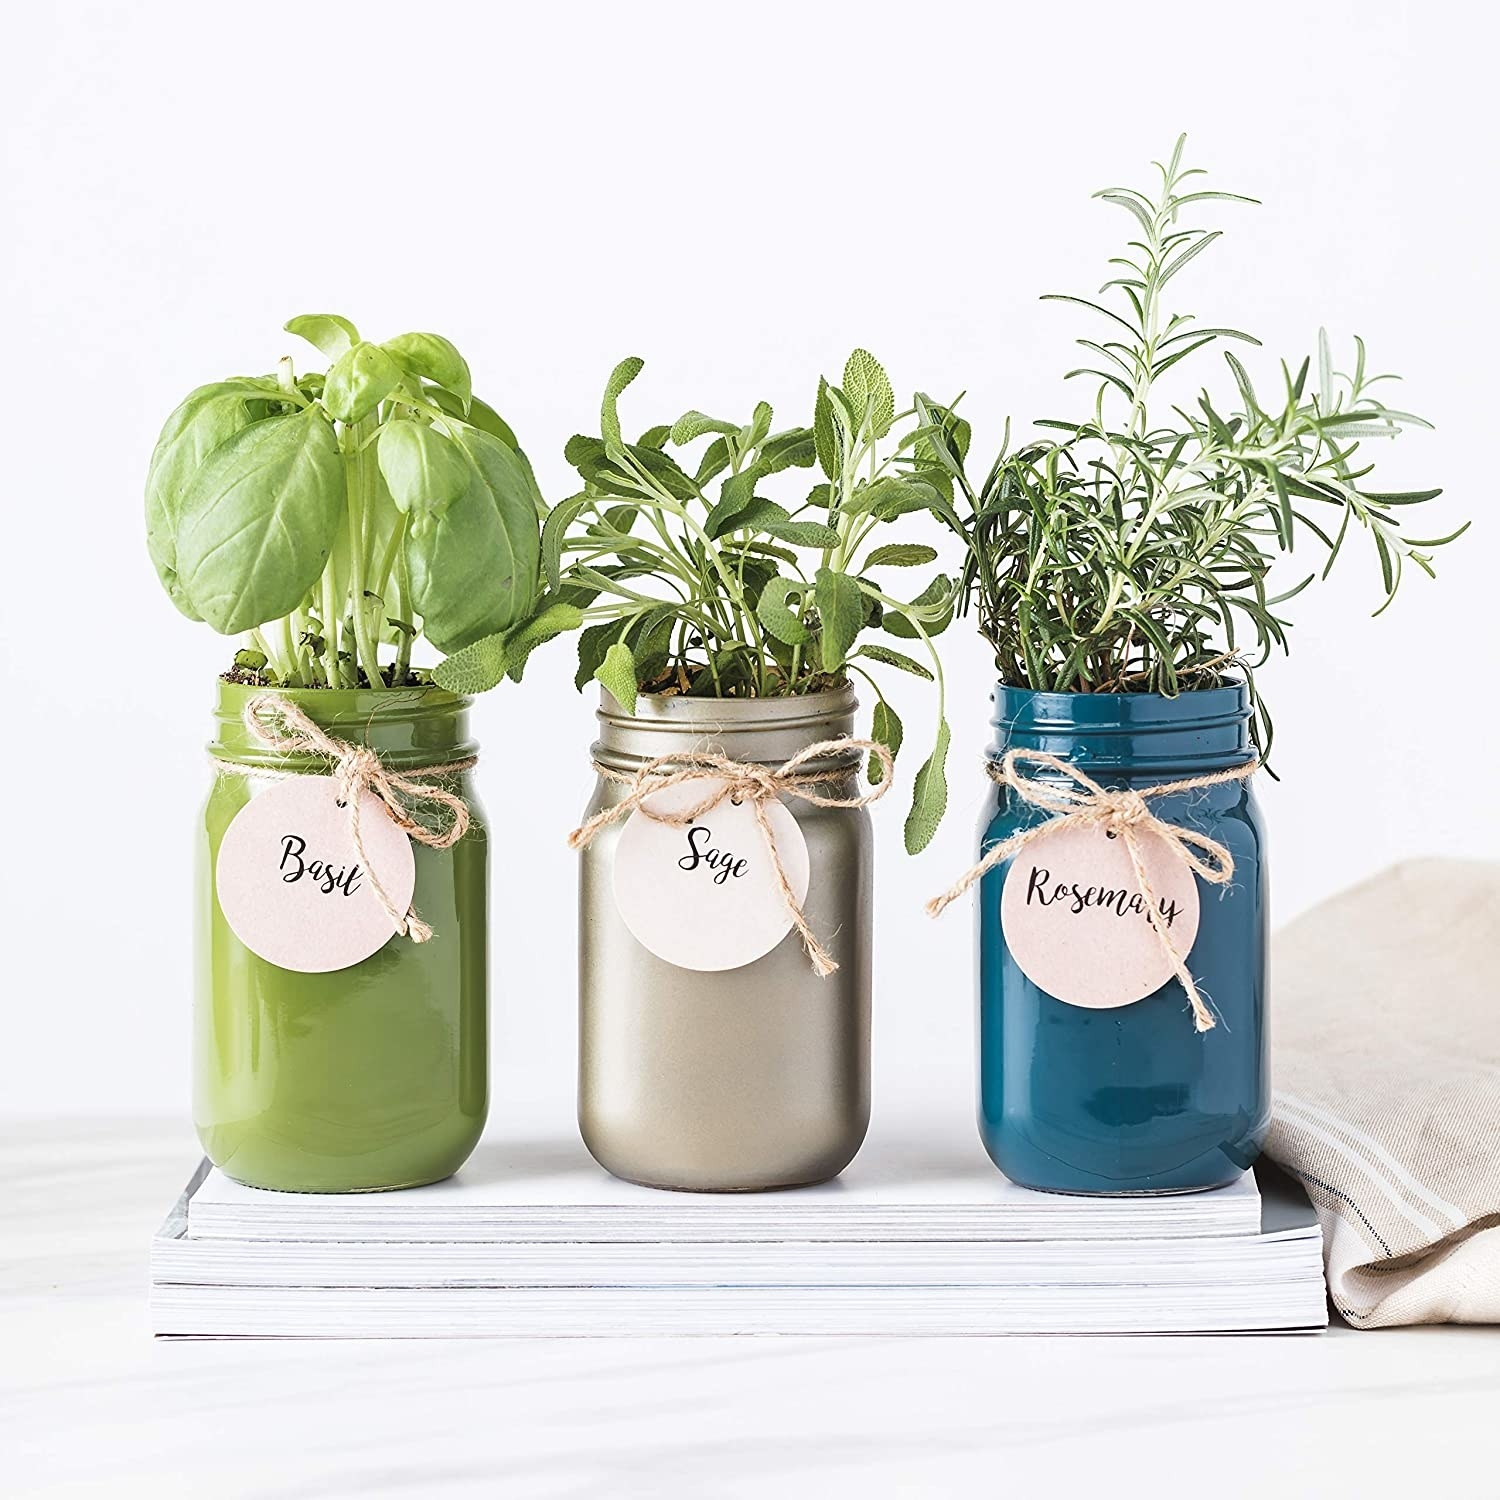 Three jars of herbs on top of a magazines